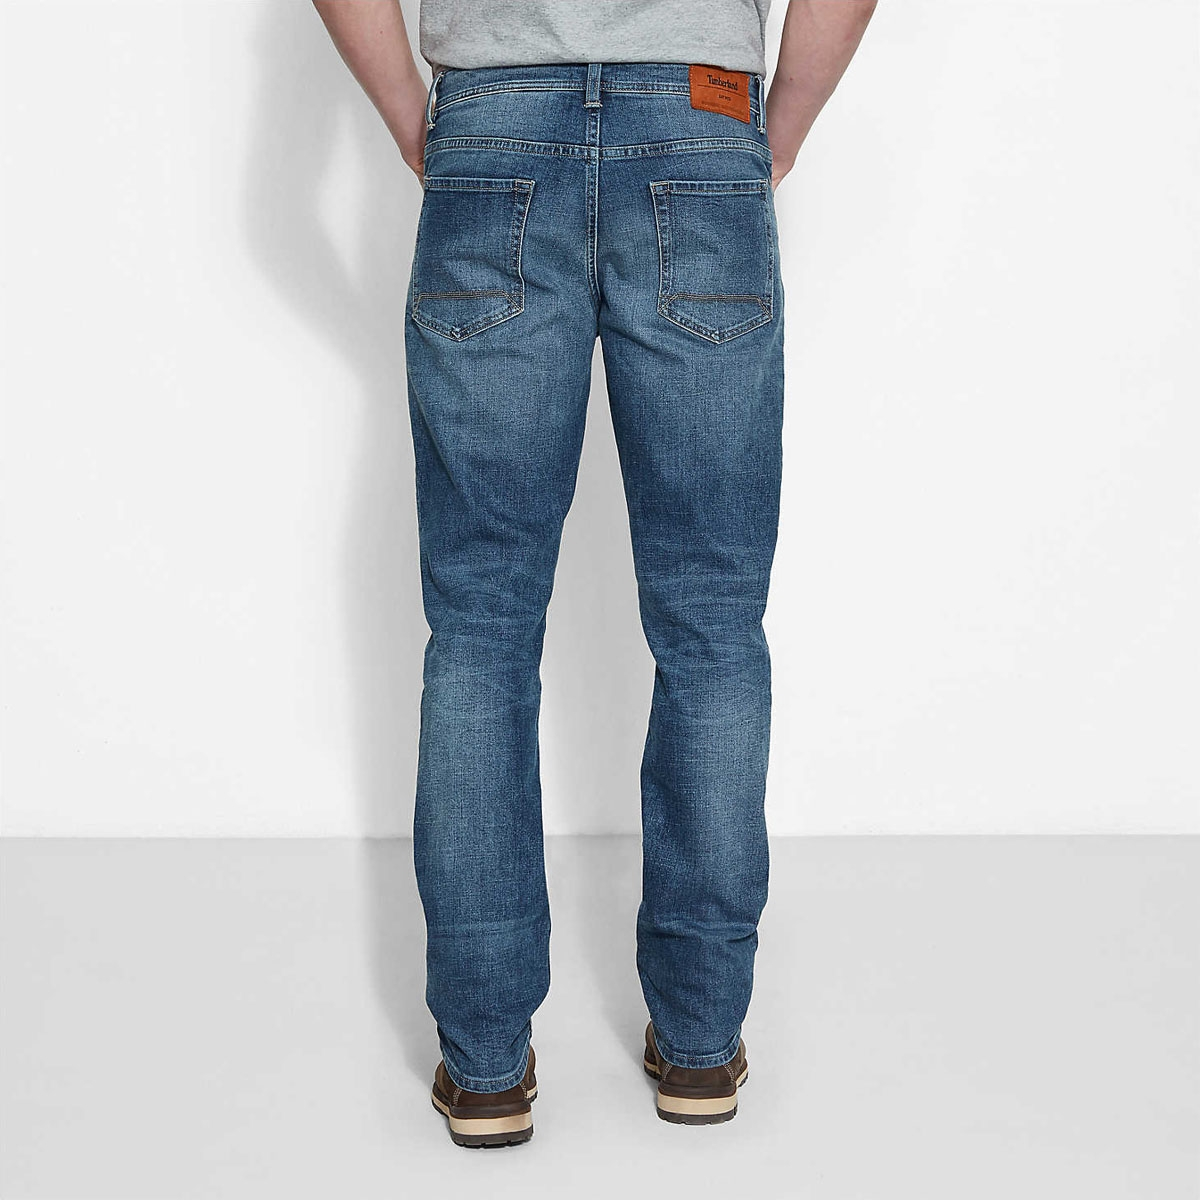 Stretch Jeansmen'sIndigo Lake Denim Squam Straight Timberland KlT15uJ3Fc